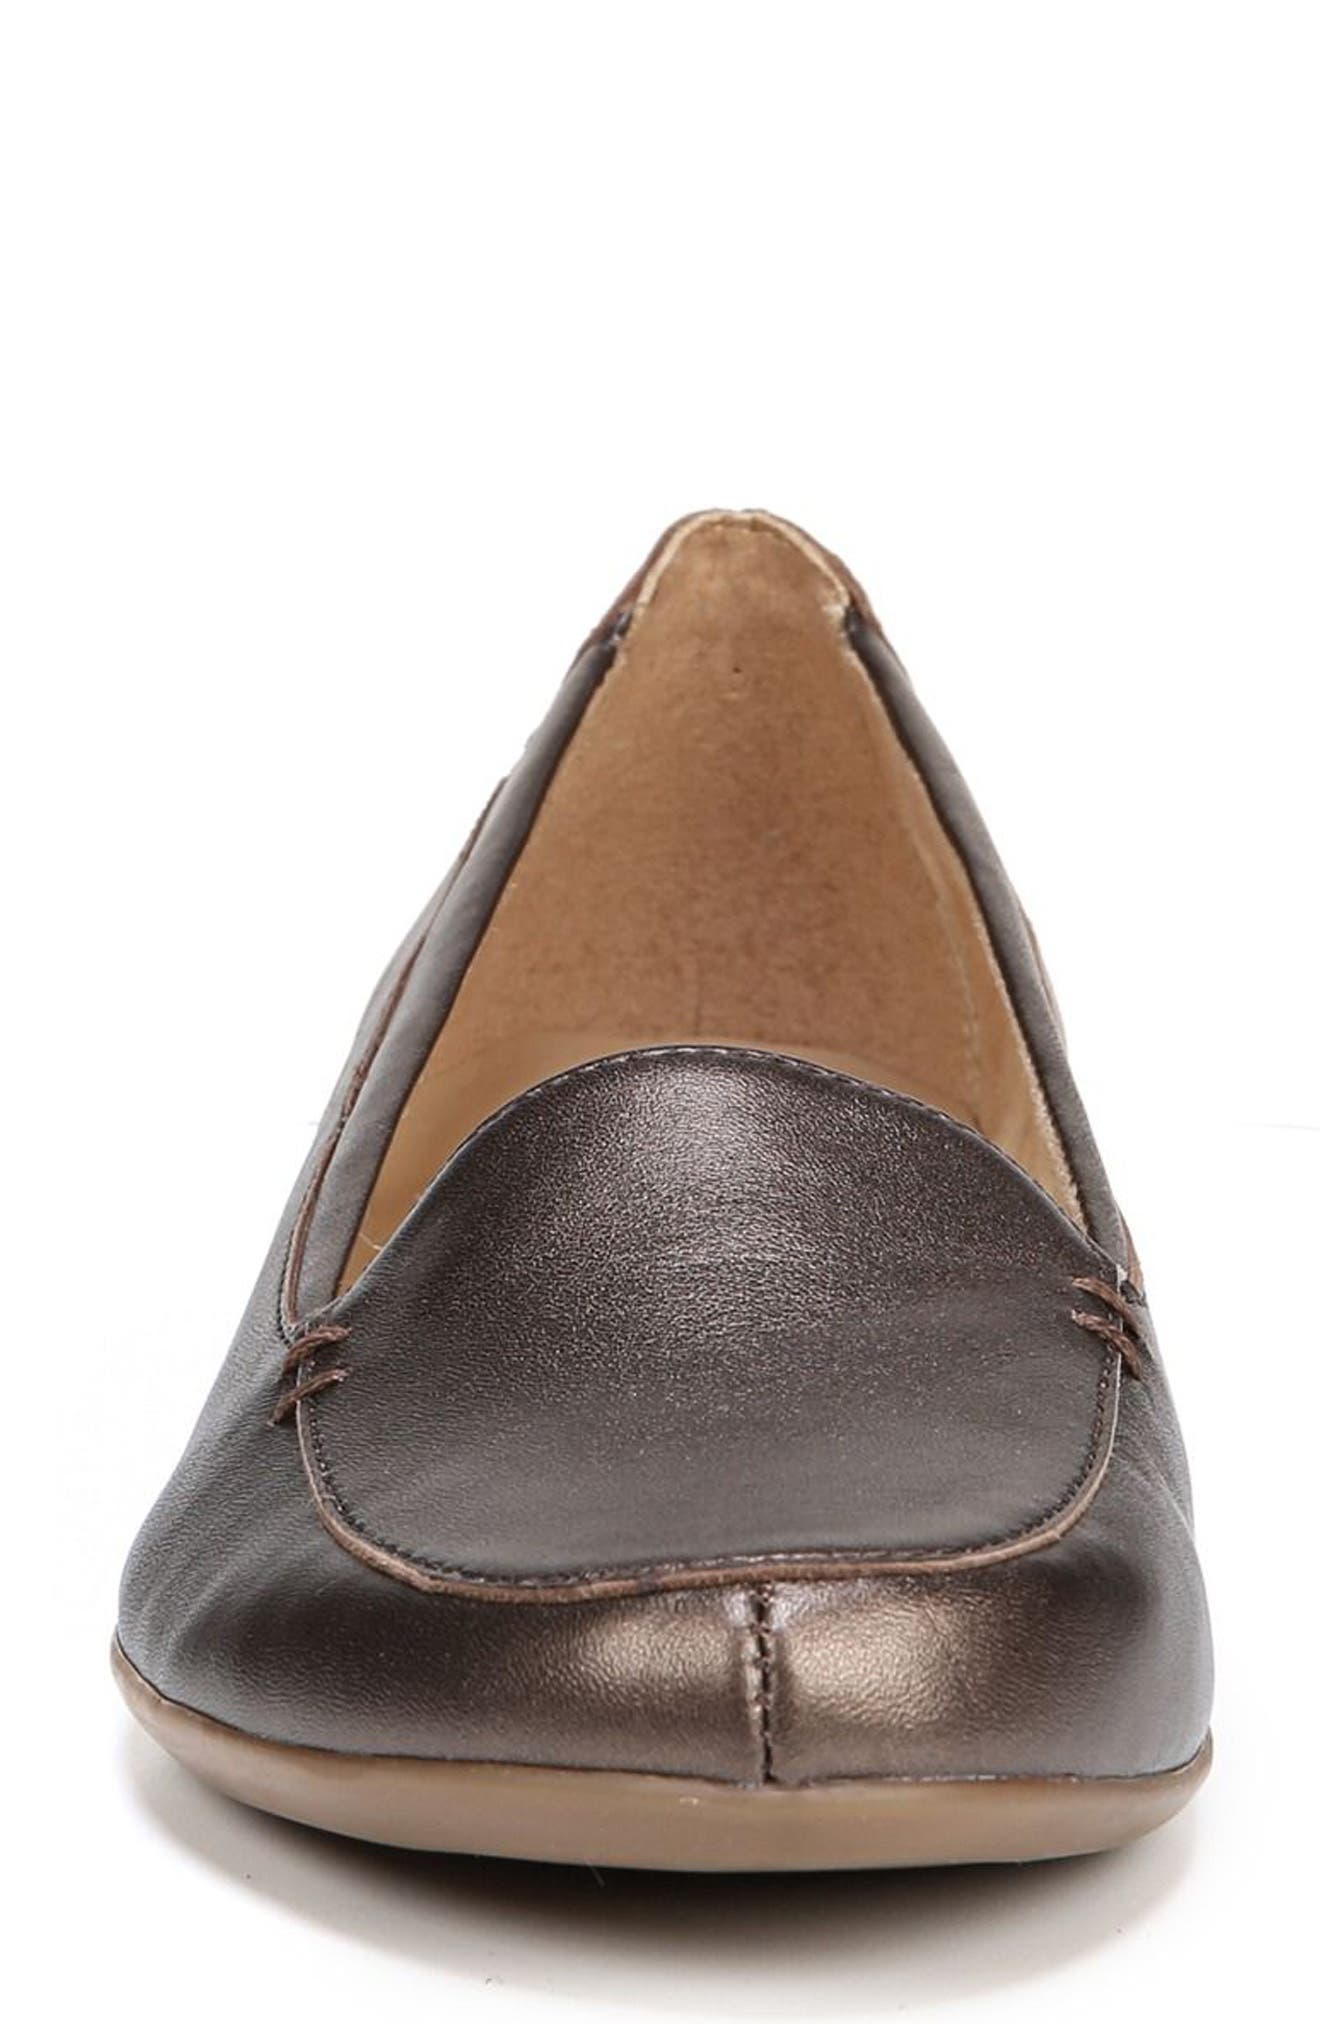 'Saban' Leather Loafer,                             Alternate thumbnail 4, color,                             BROWN BRONZE LEATHER